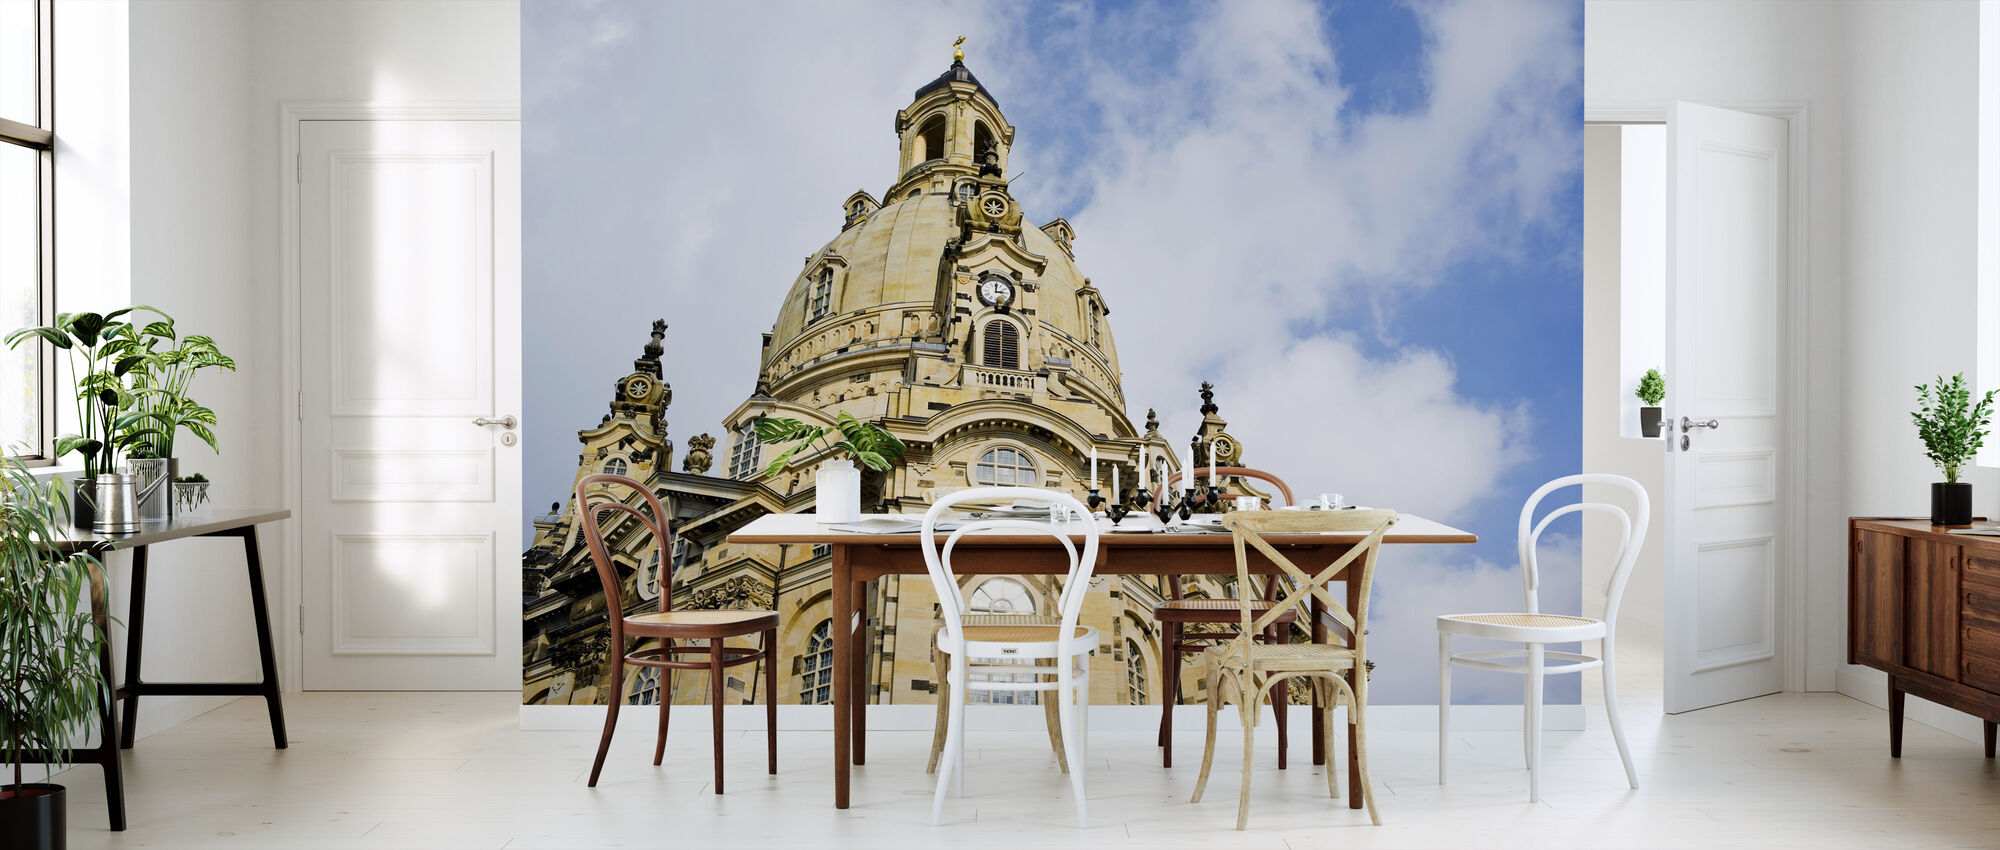 Frauenkirche in Dresden - Wallpaper - Kitchen